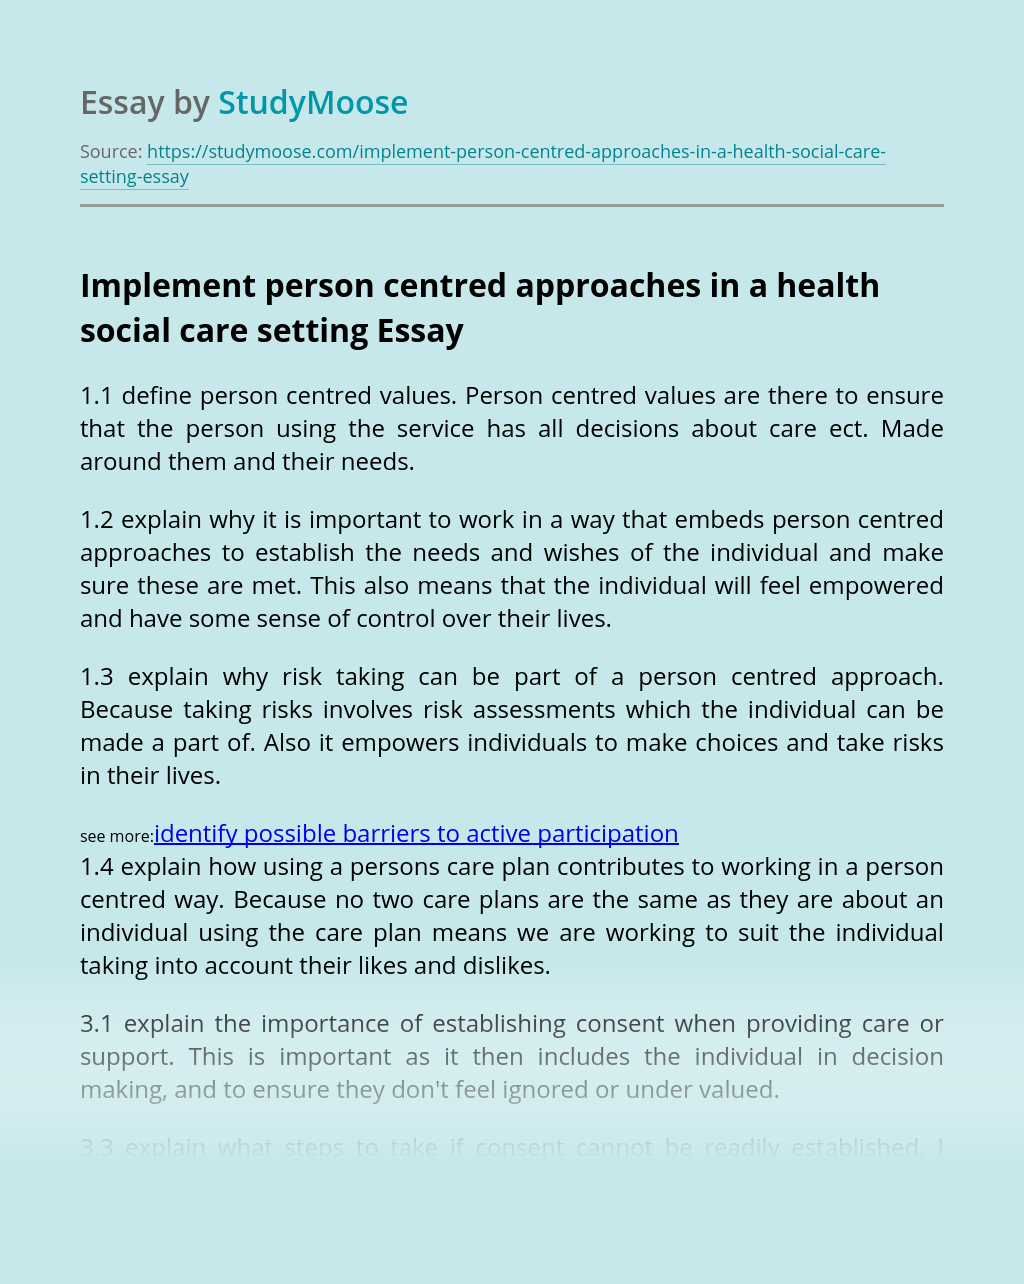 Implement person centred approaches in a health social care setting